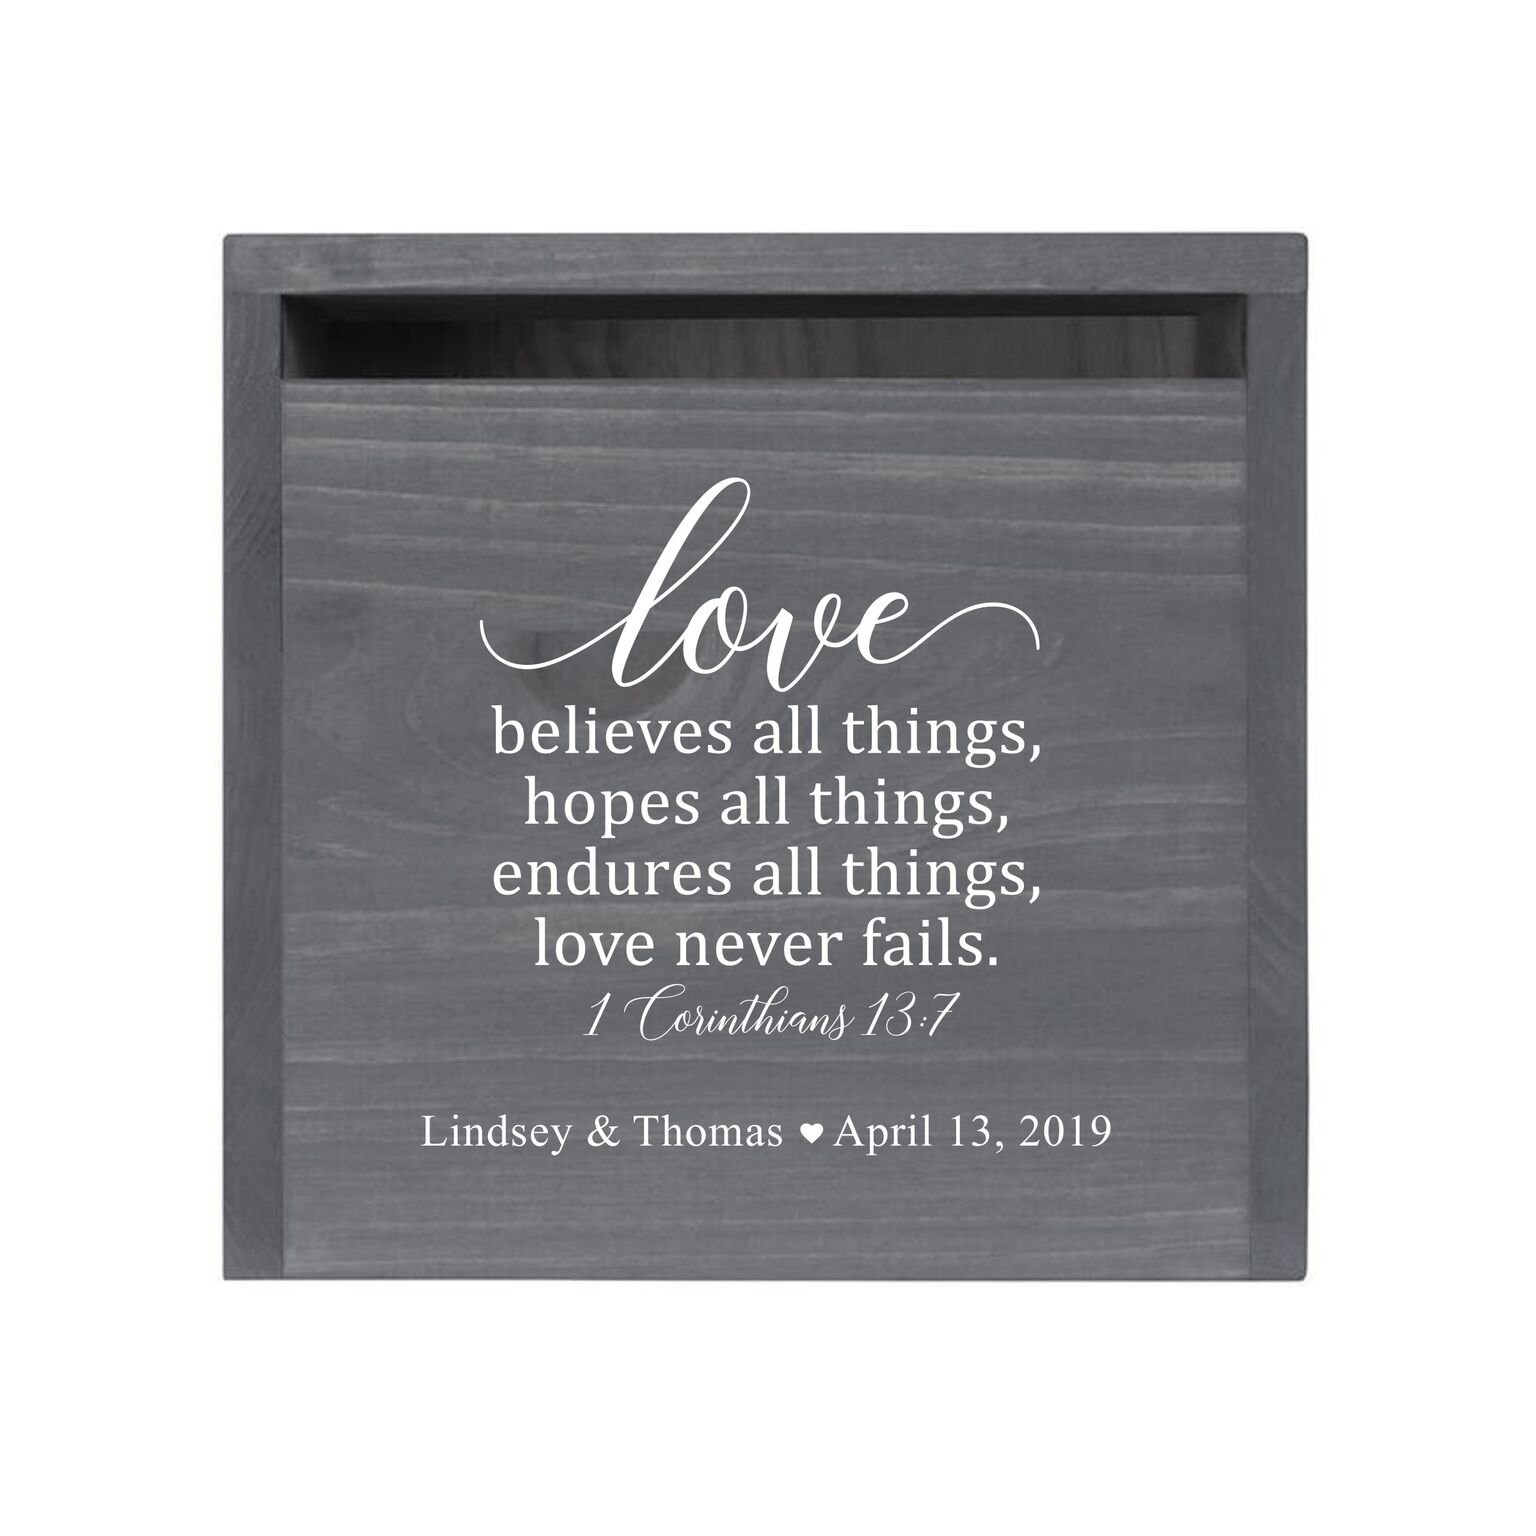 """LifeSong Milestones Personalized Love Never Fails Rustic Wooden Wedding Card Box Custom Card Holder with Front Slot for Newlyweds Couples Reception 13.5"""" L x 12"""" W x 12.5"""" T (Grey)"""